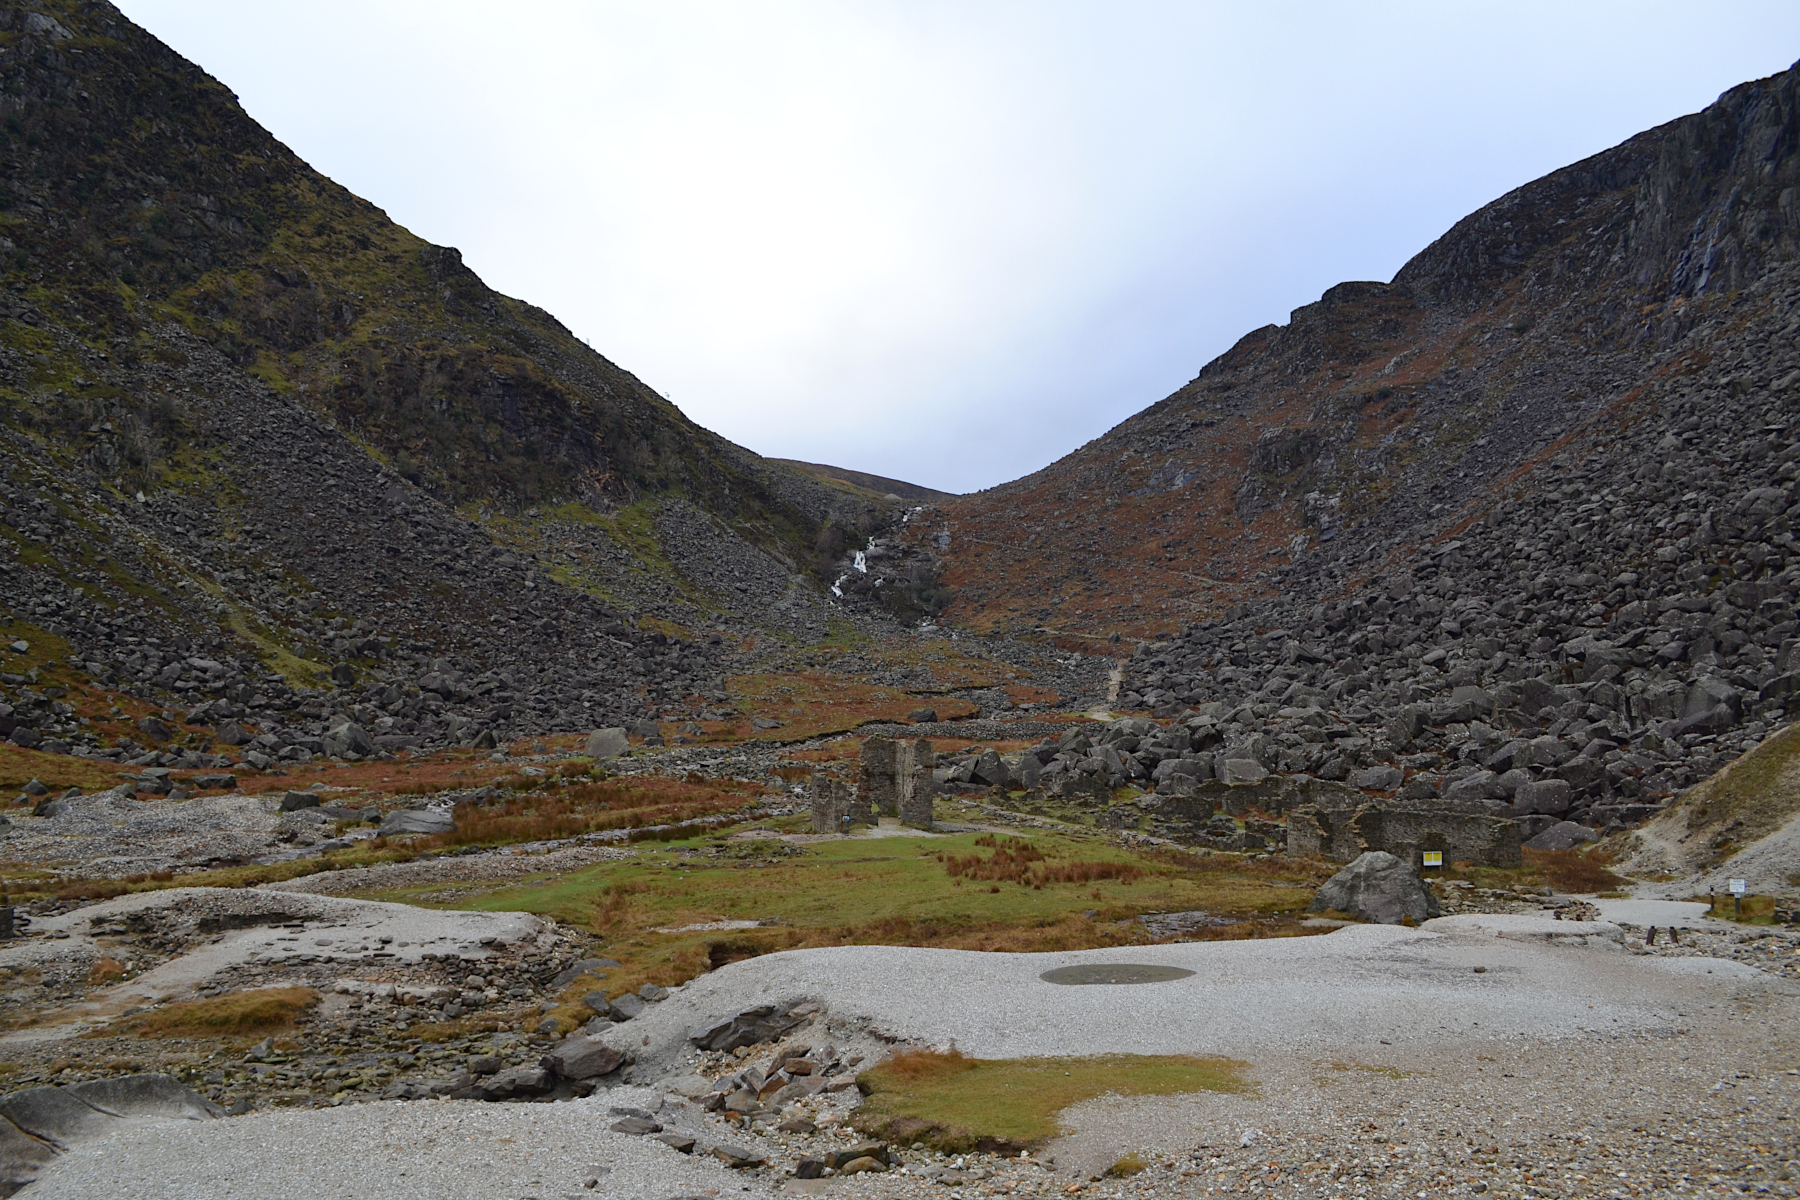 mine de Glendalough, randonnée au parc national de Wicklow, trail, panorama et paysage